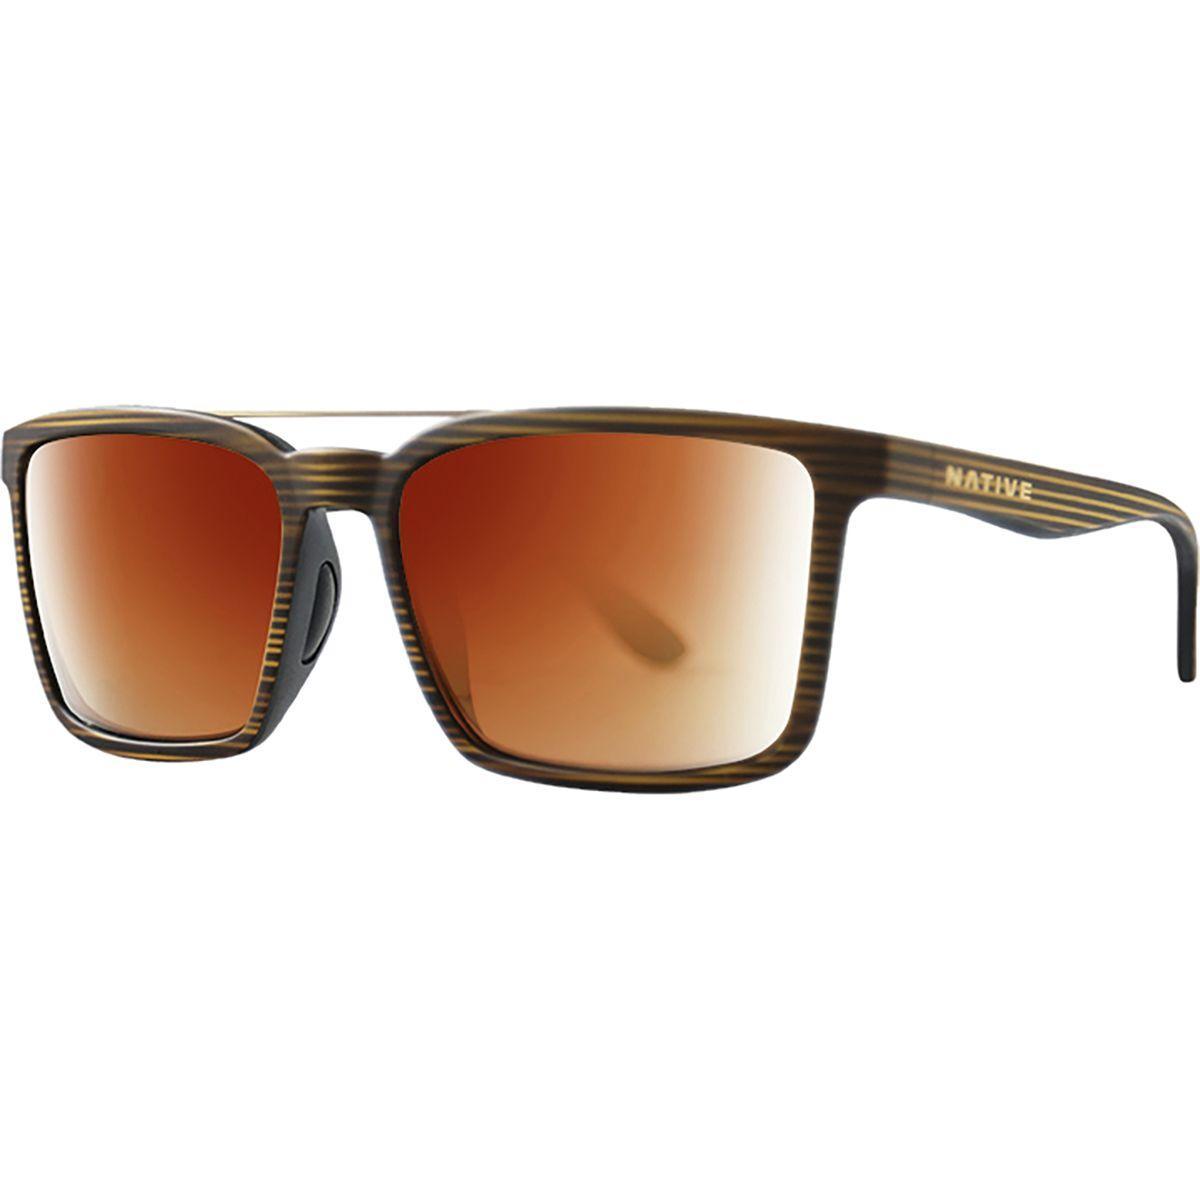 d0db0d5828 Lyst - Native Eyewear Four Corners Polarized Sunglasses in Brown for Men